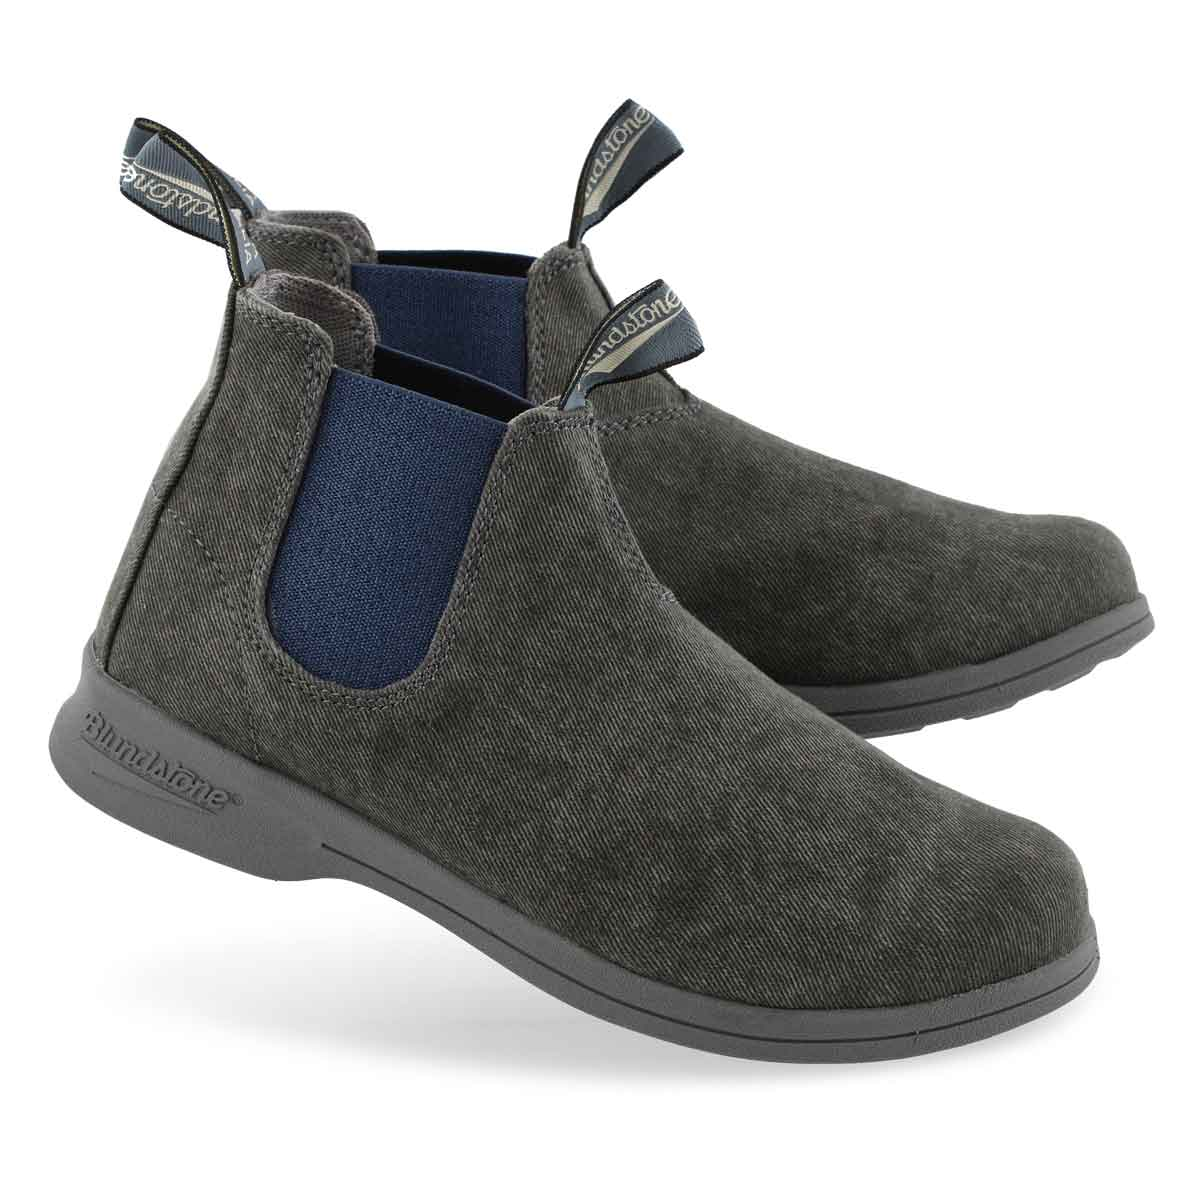 Unisex Canvas charcoal/blue pull on boot